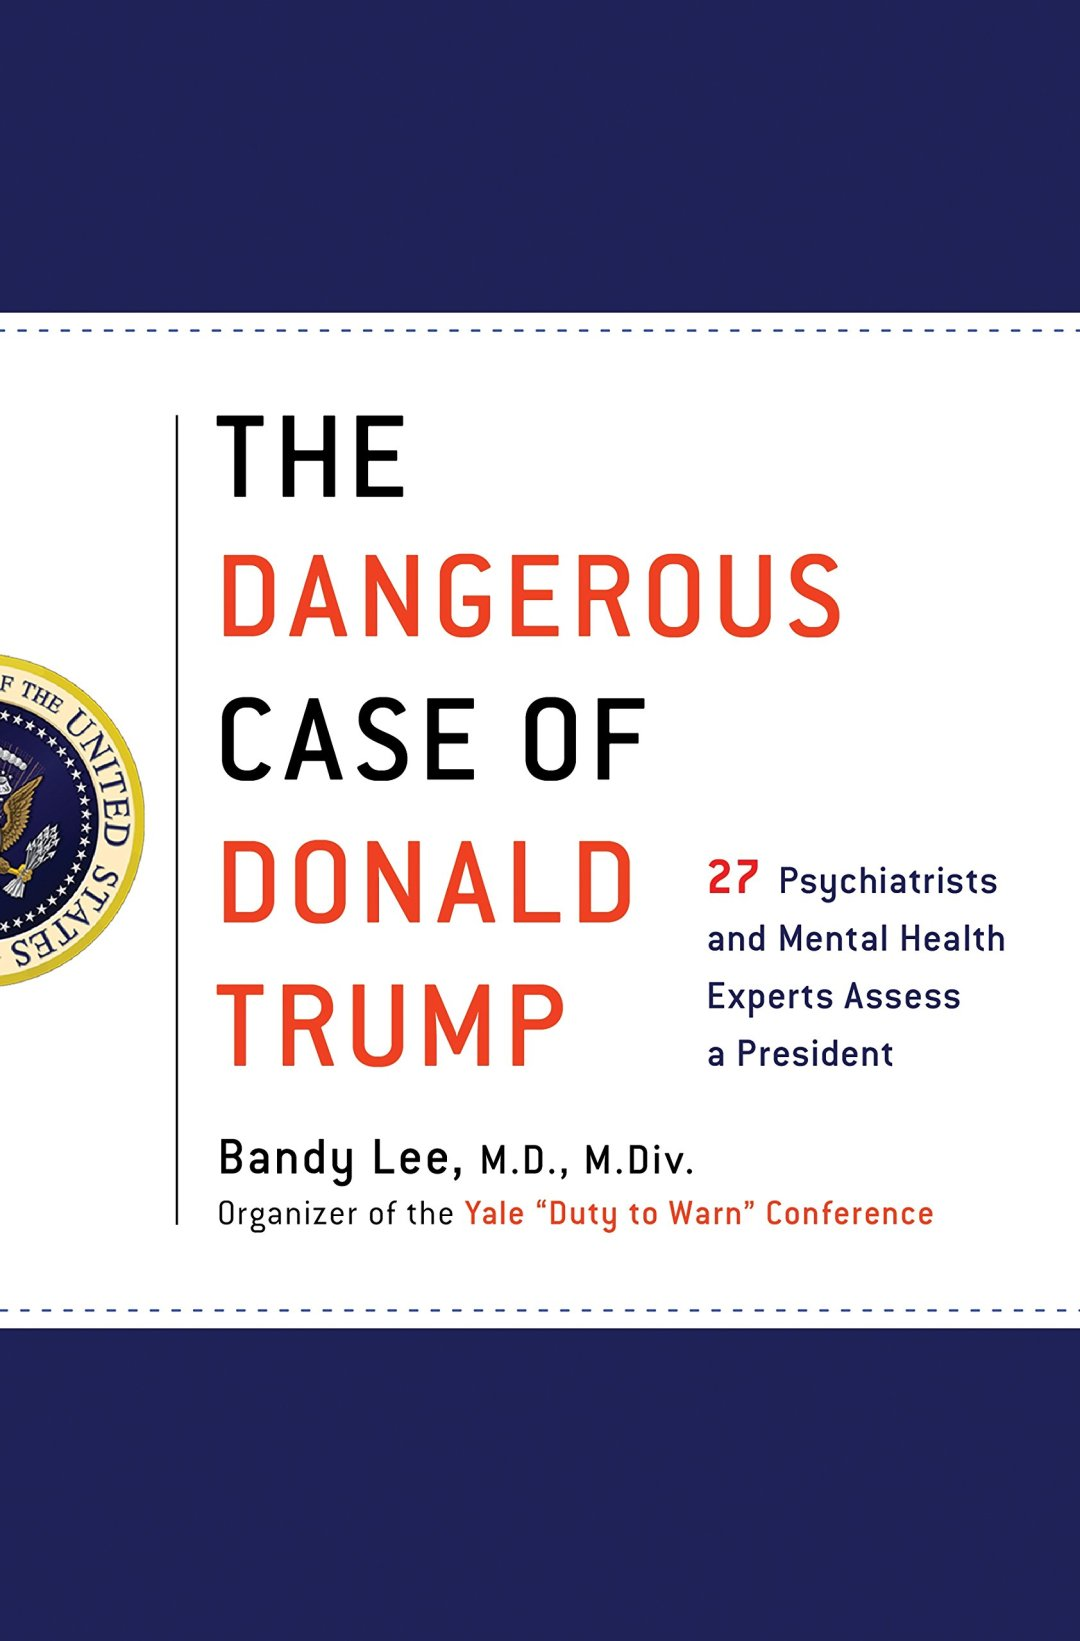 Book Cover of The Dangerous Case of Donald Trump